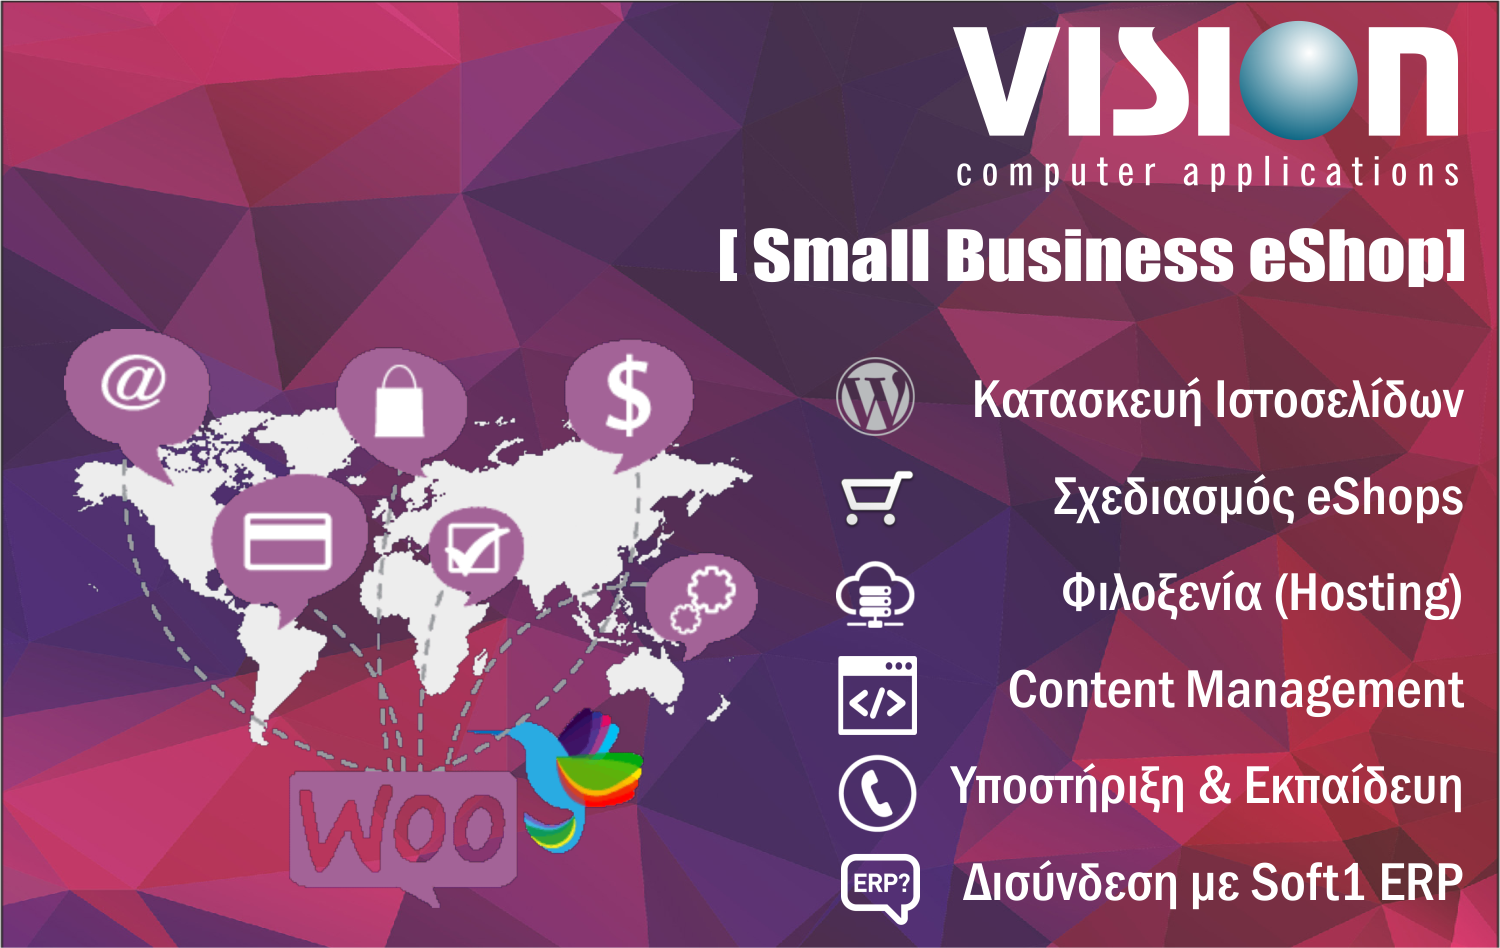 Small Business eShop